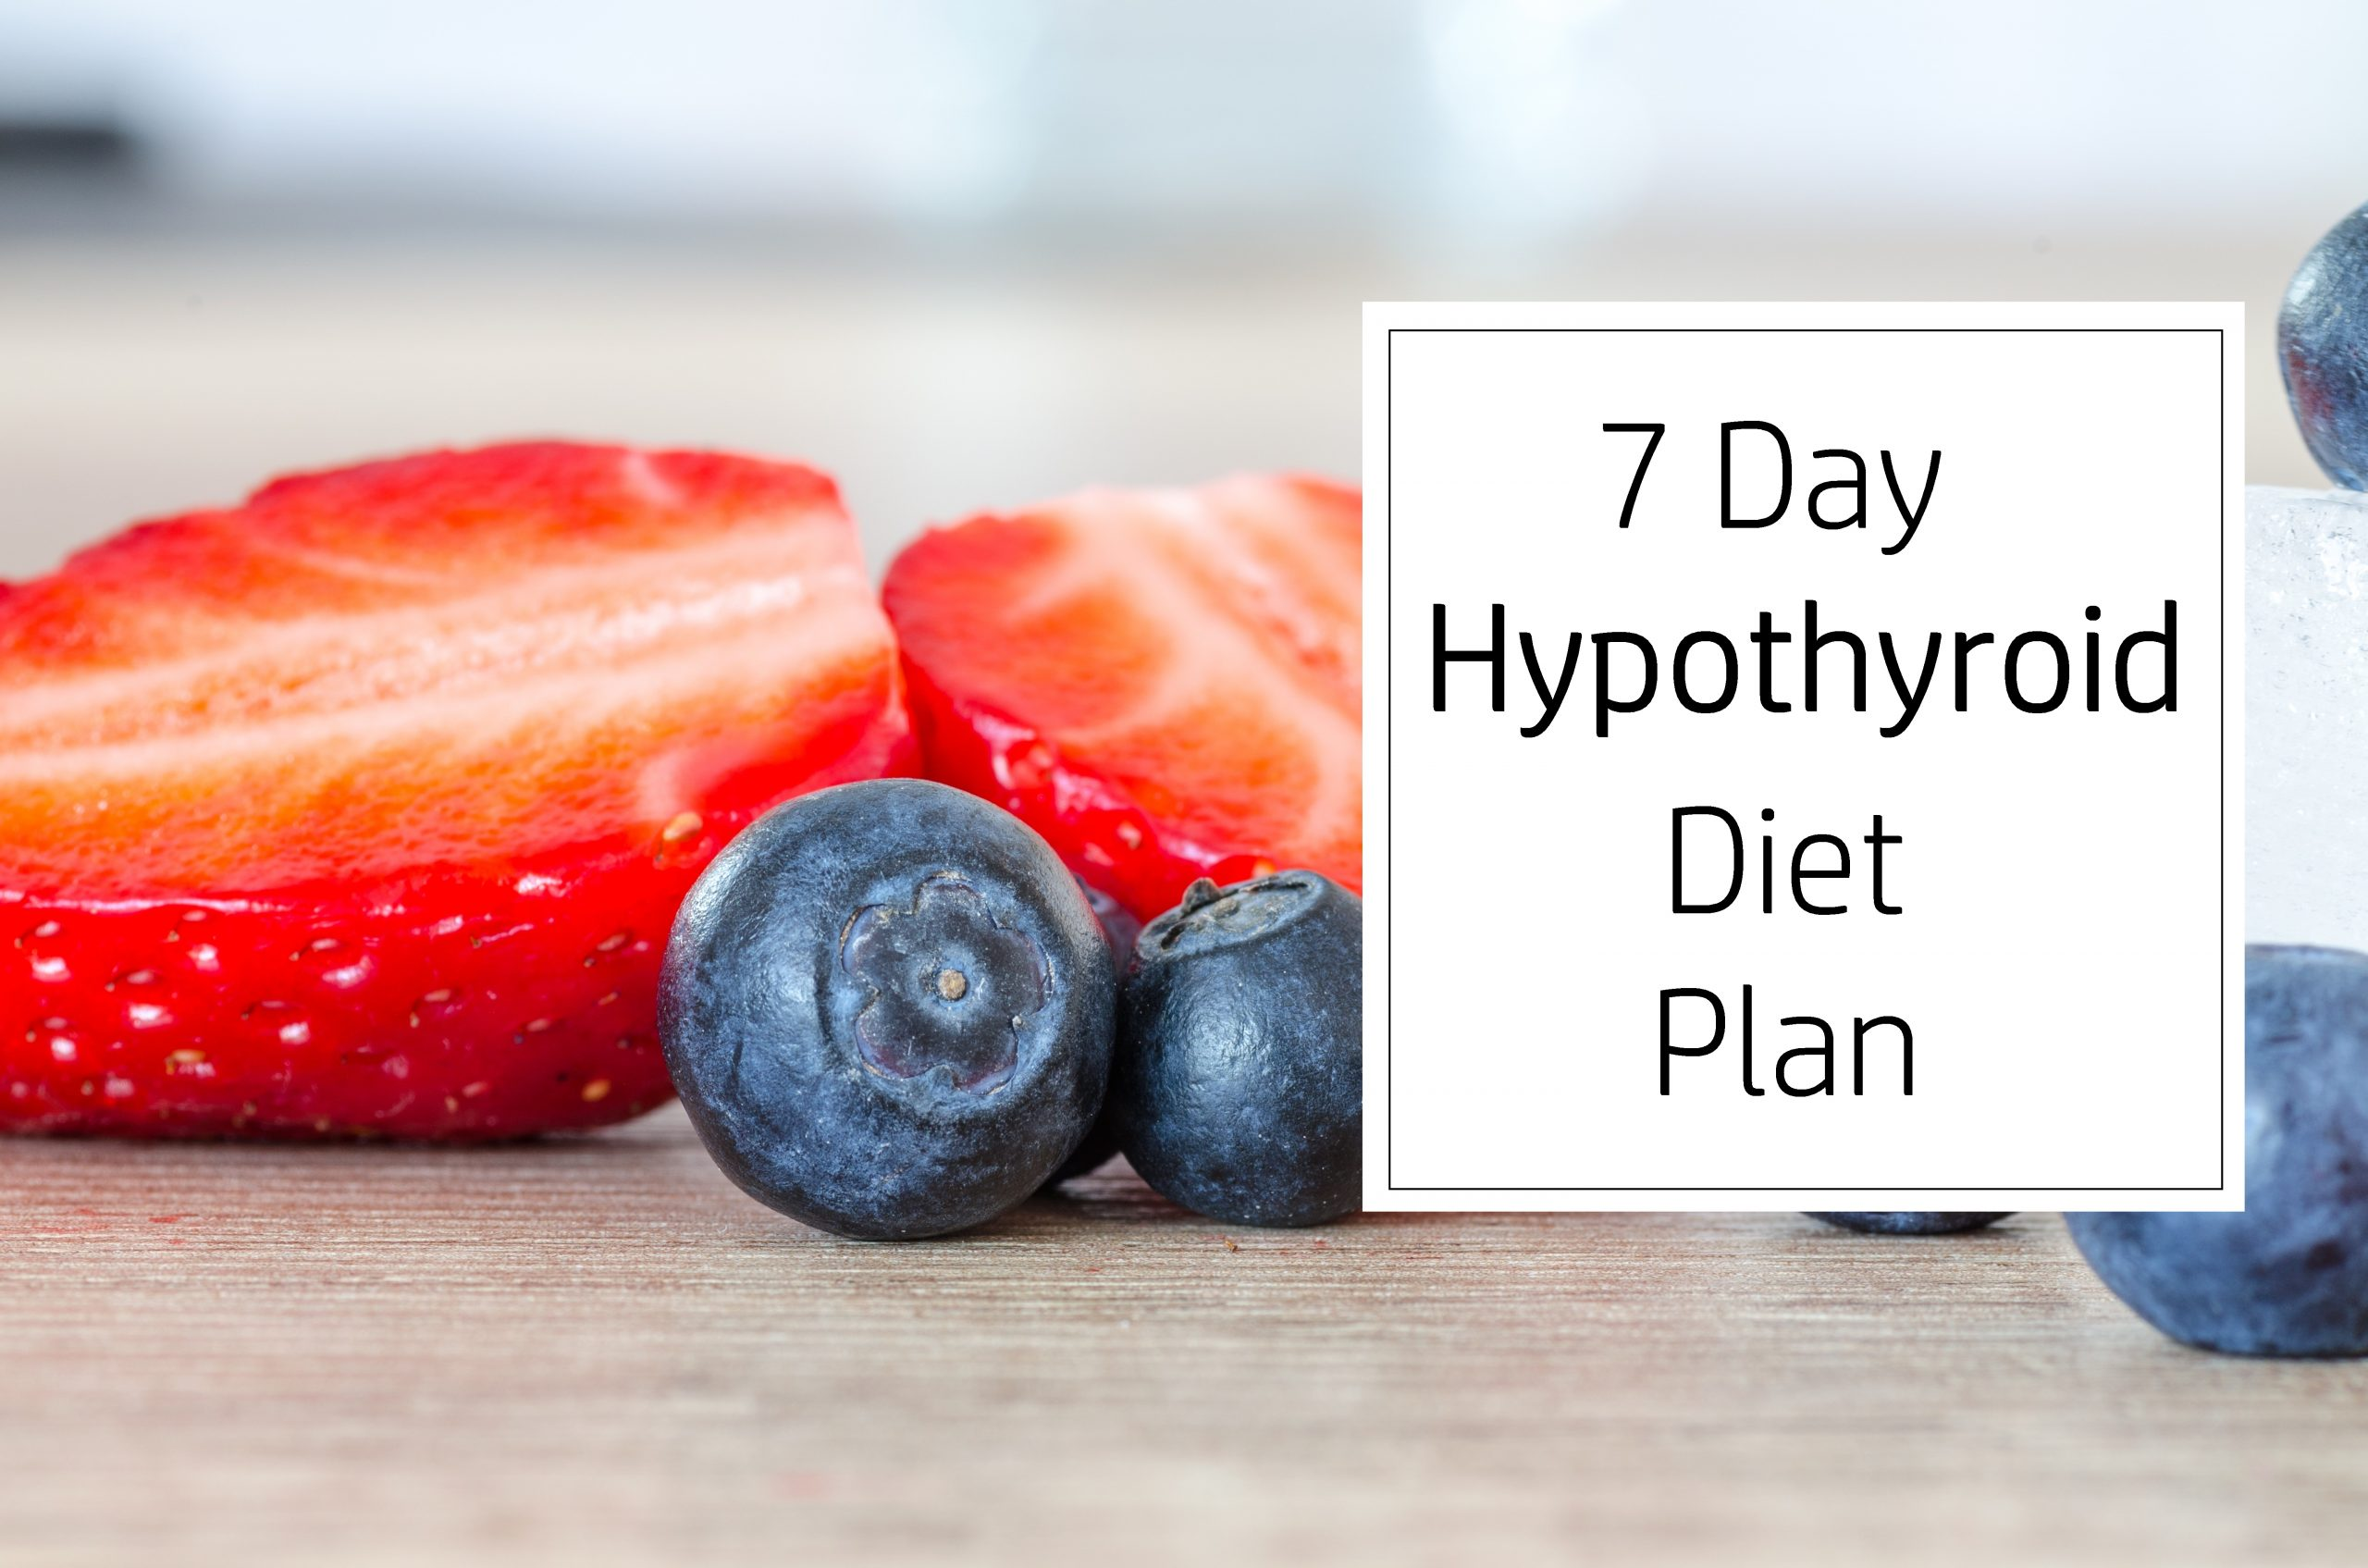 7 day hypothyroid diet plan heal your thyroid naturally